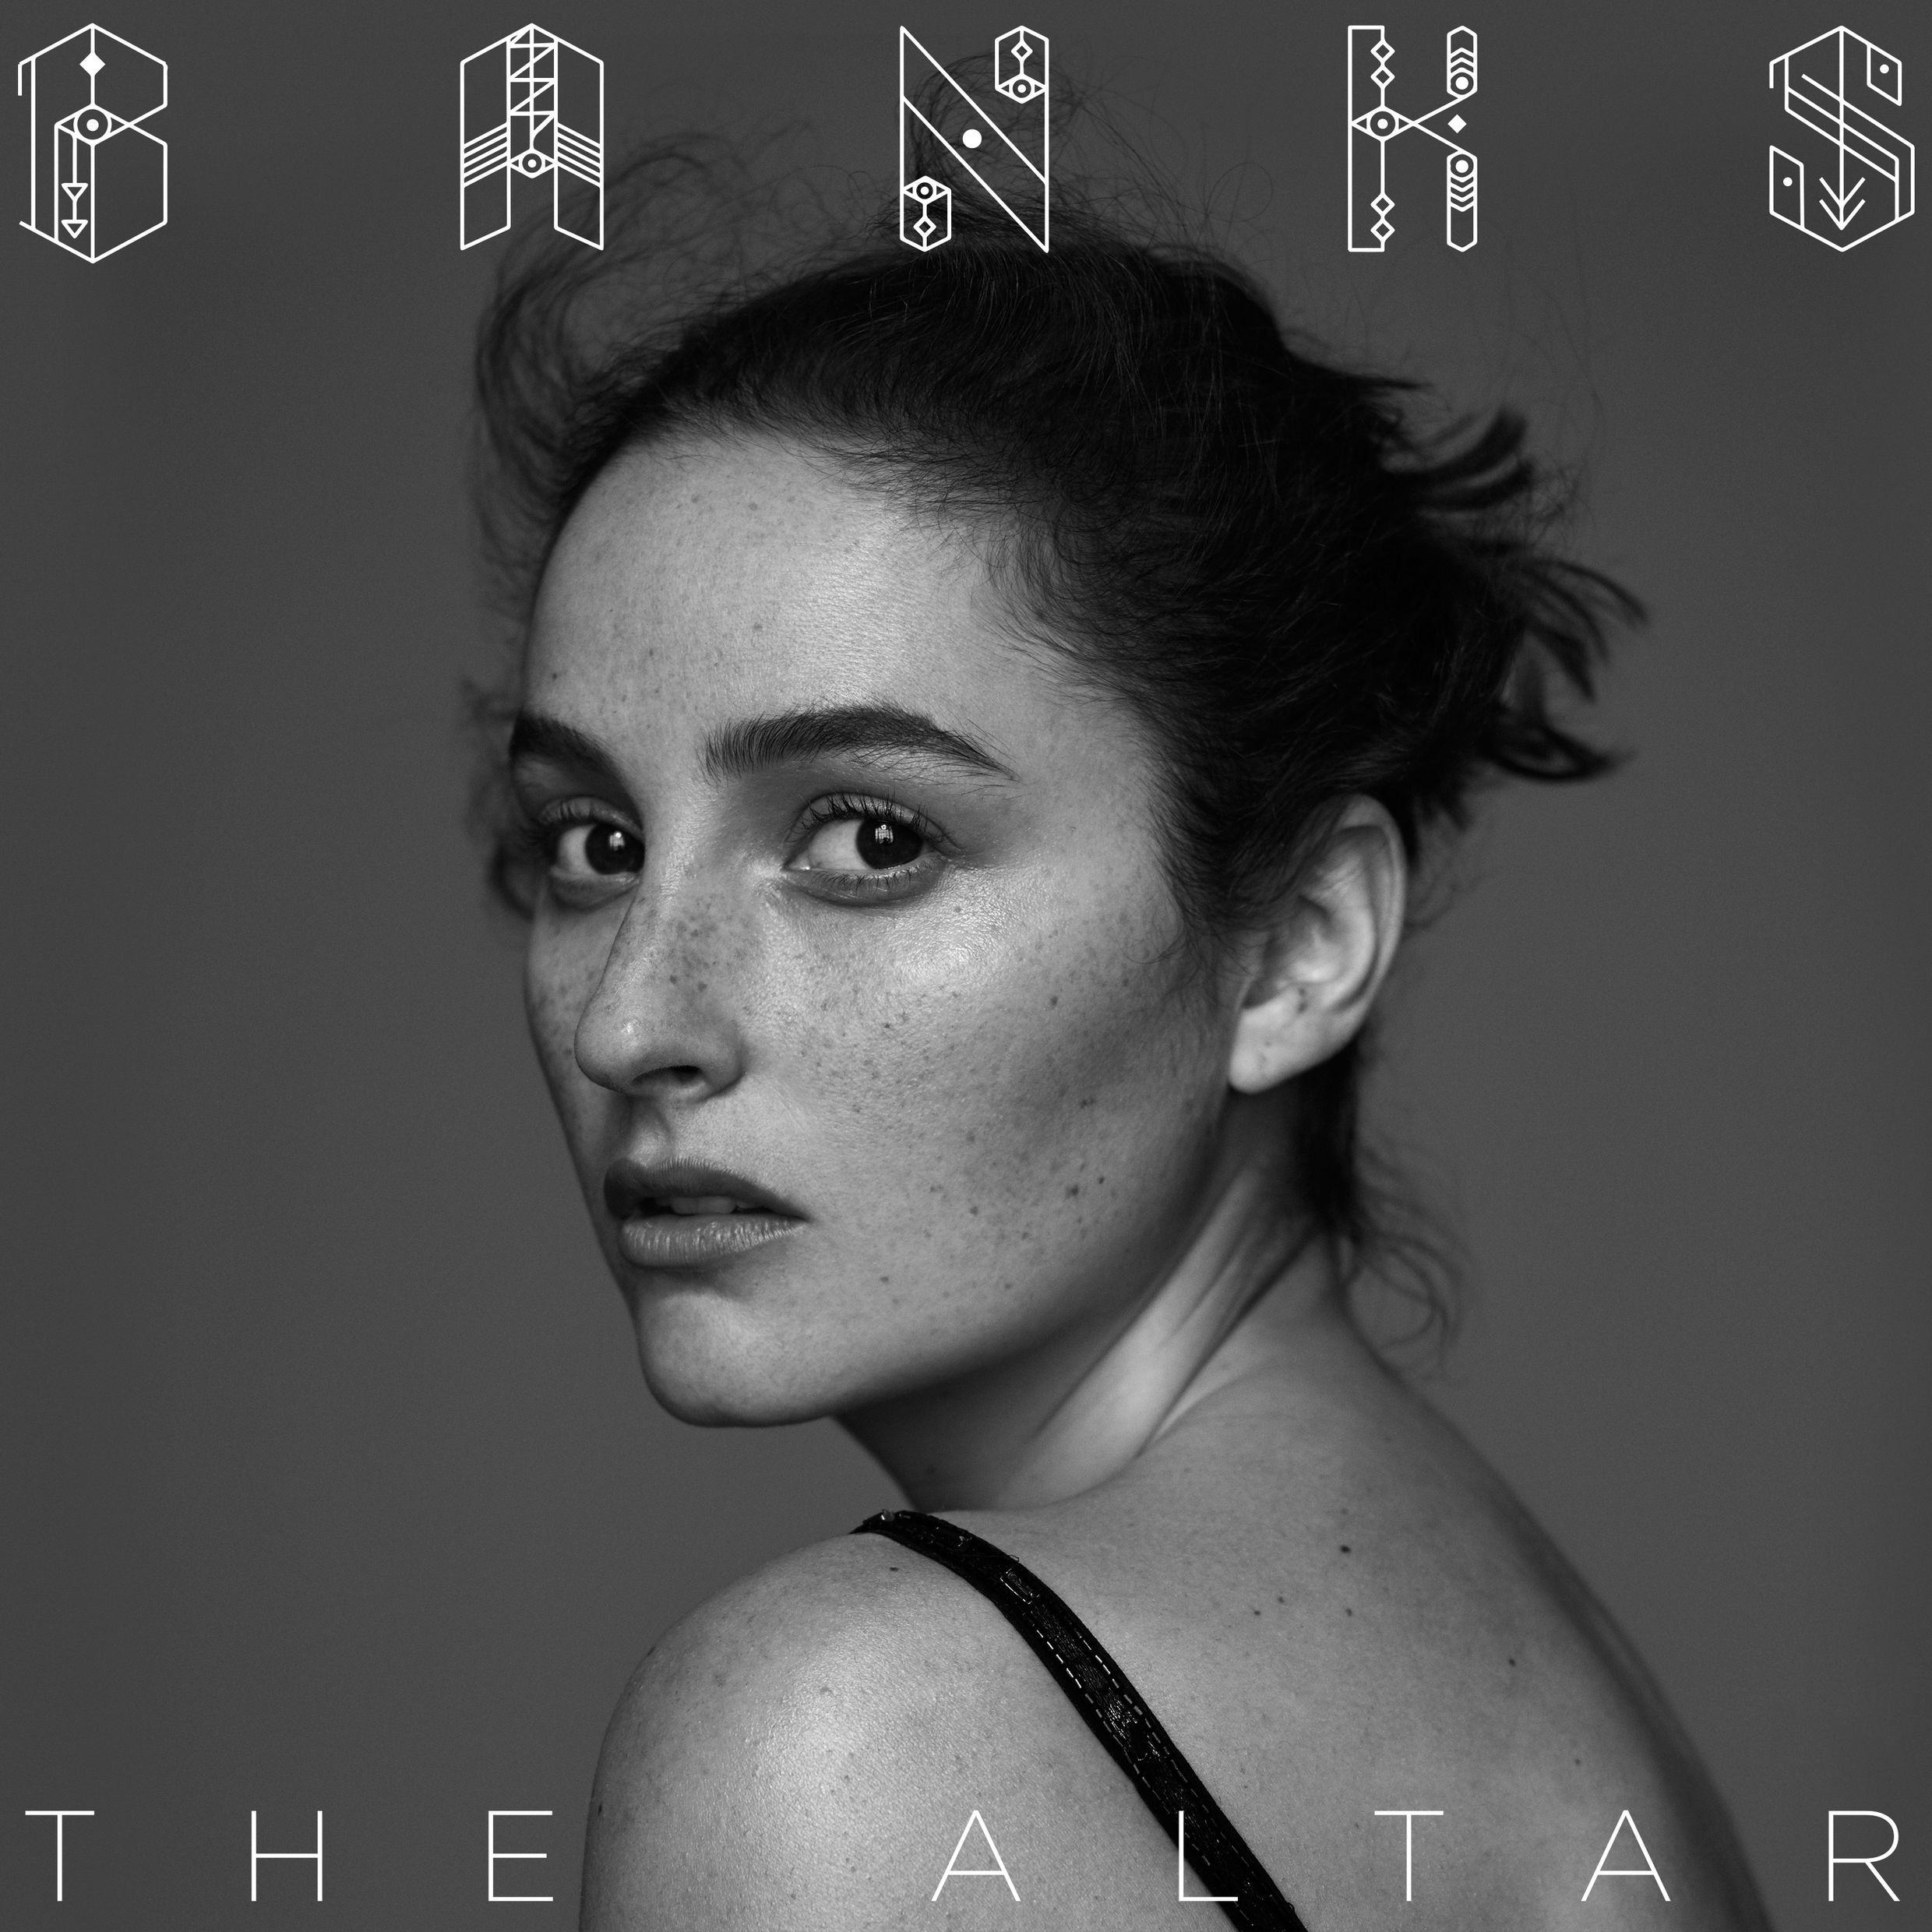 BANKS - The Altar album cover